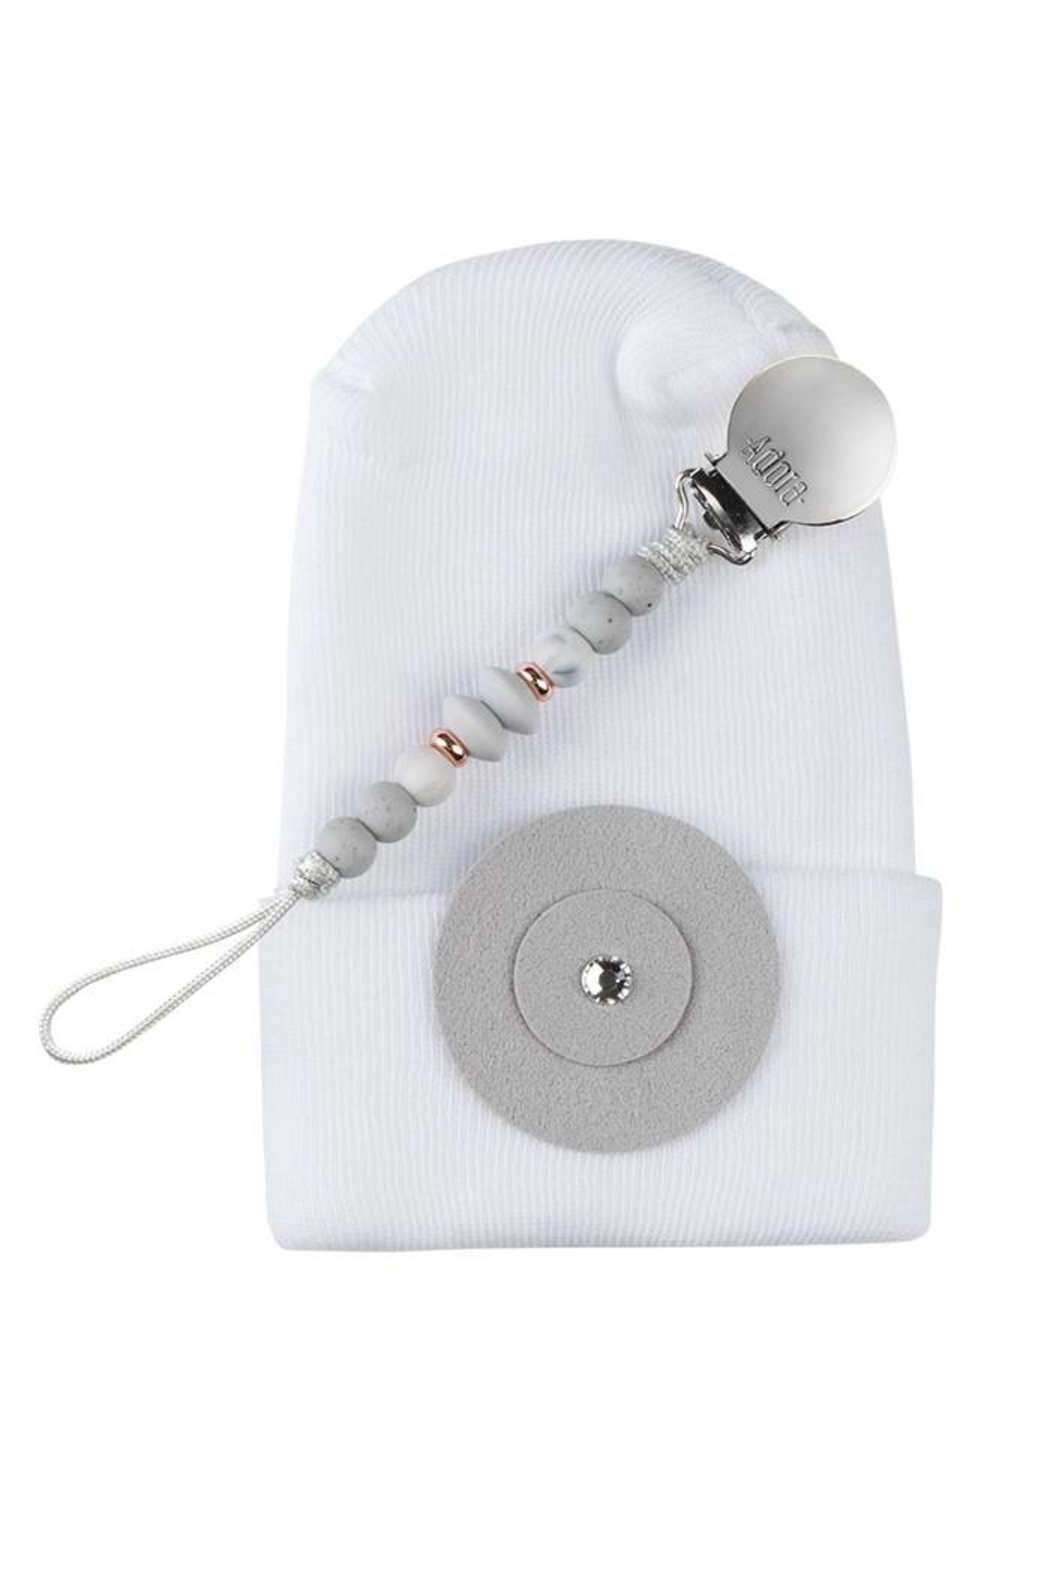 Adora Baby Grey Circle Gift Set For Boys Newborn(Hat + Pacifier Clip) - Front Cropped Image